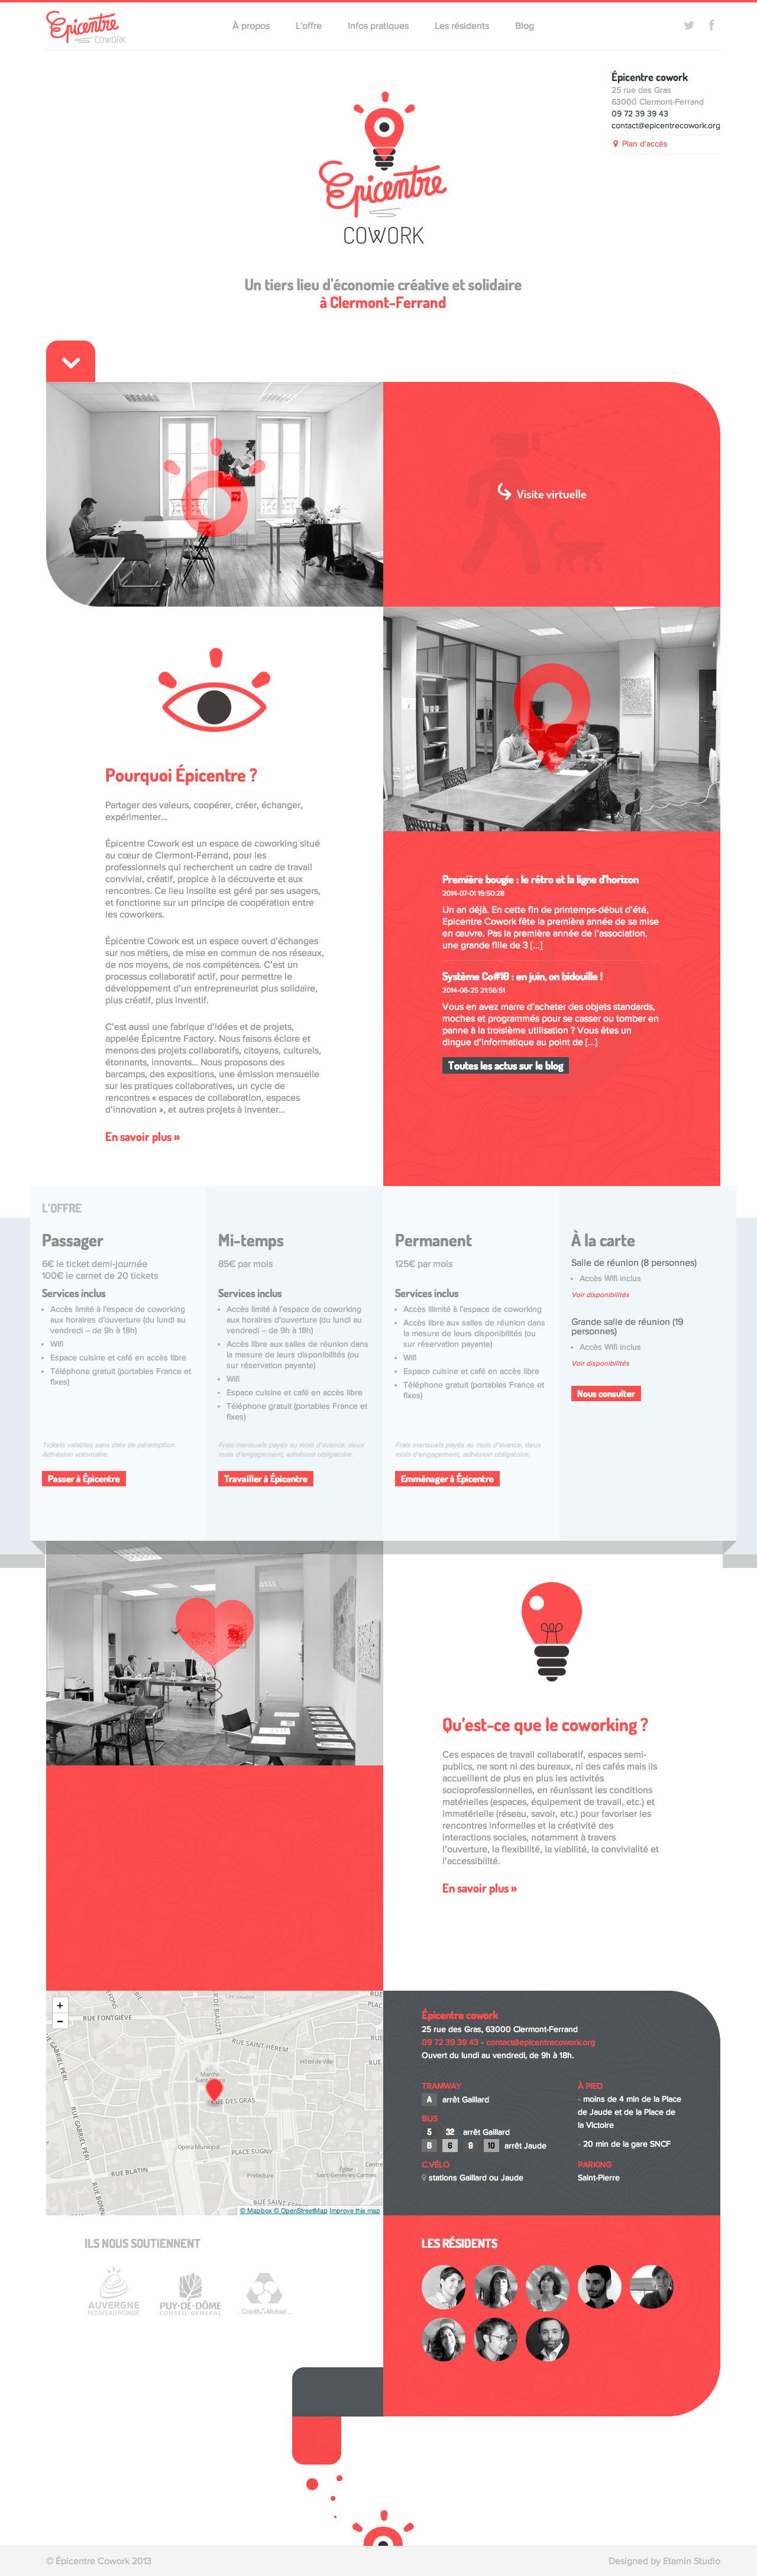 Epicentre Cowork Website Screenshot